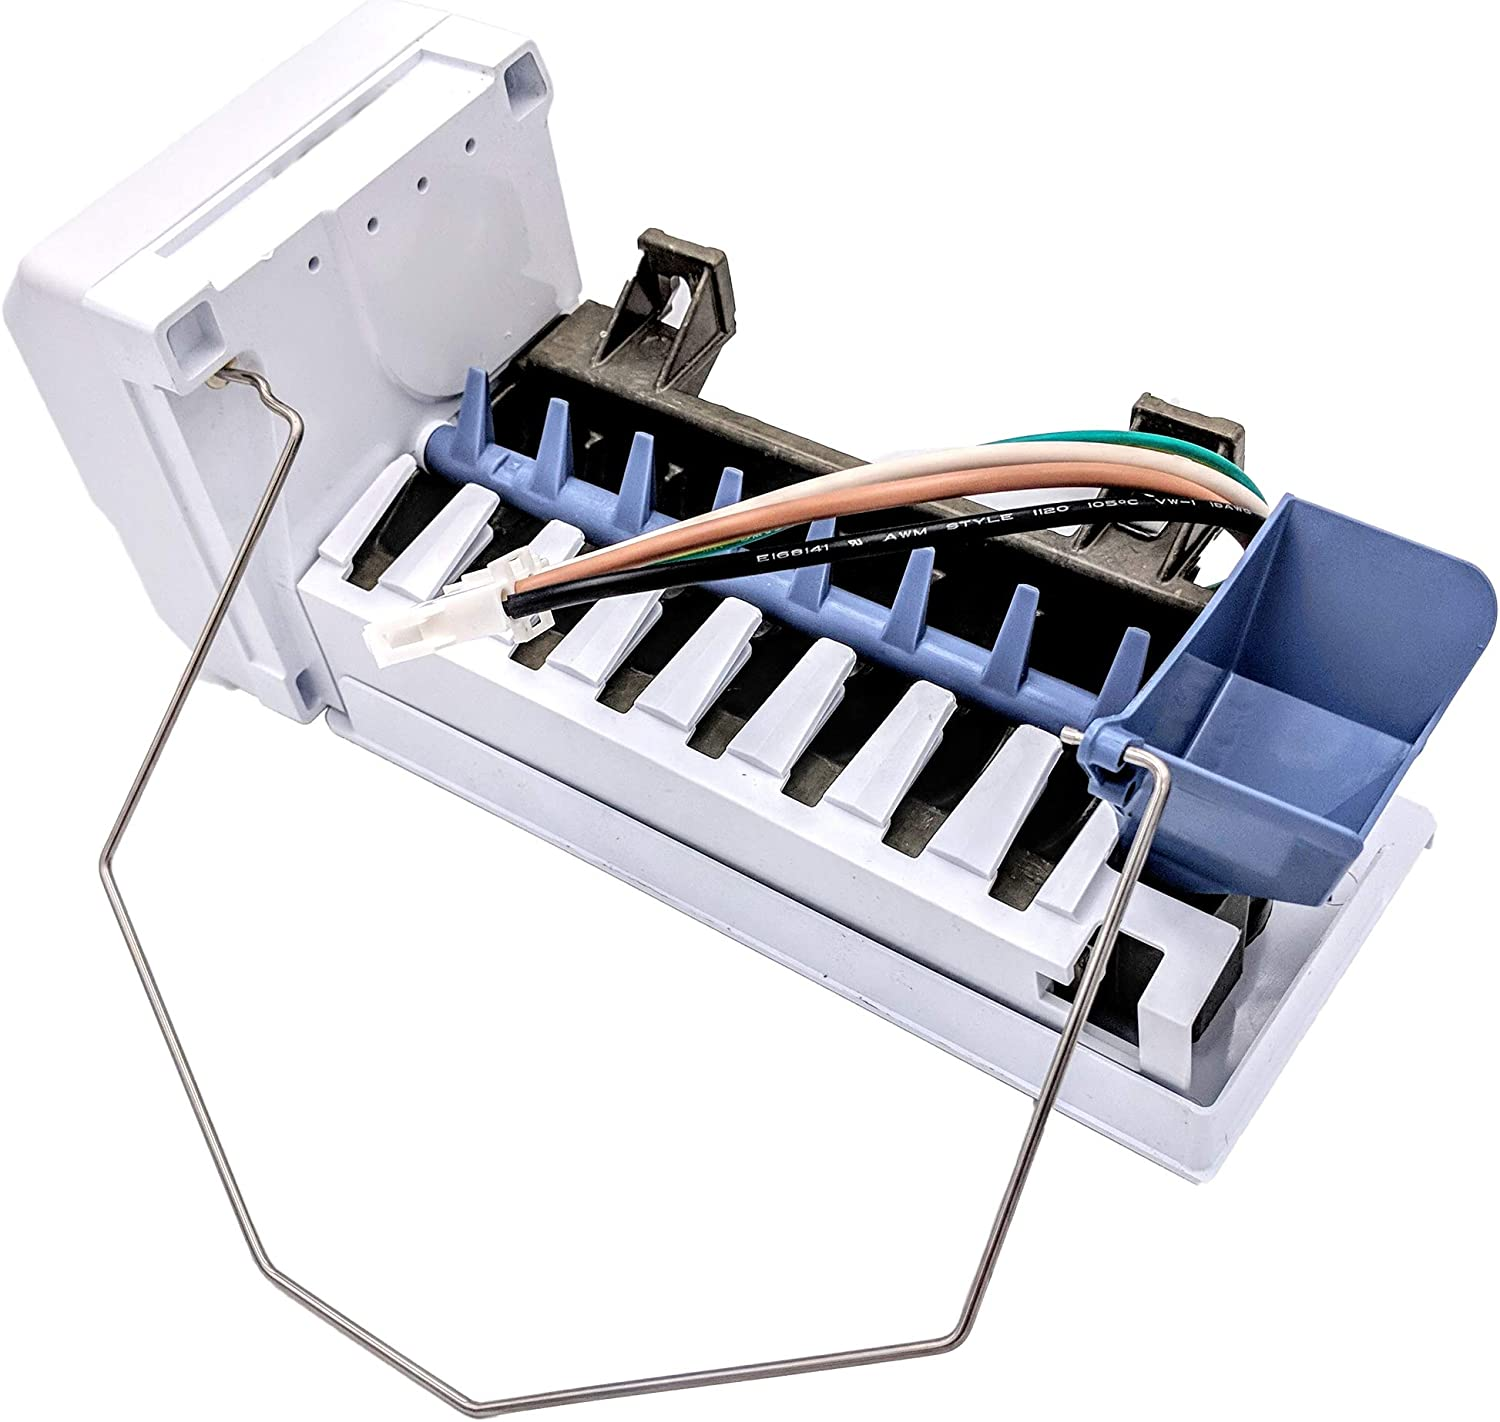 Supplying Demand W10469286 W10793297 Refrigerator Ice Maker Assembly Compatible With Amana